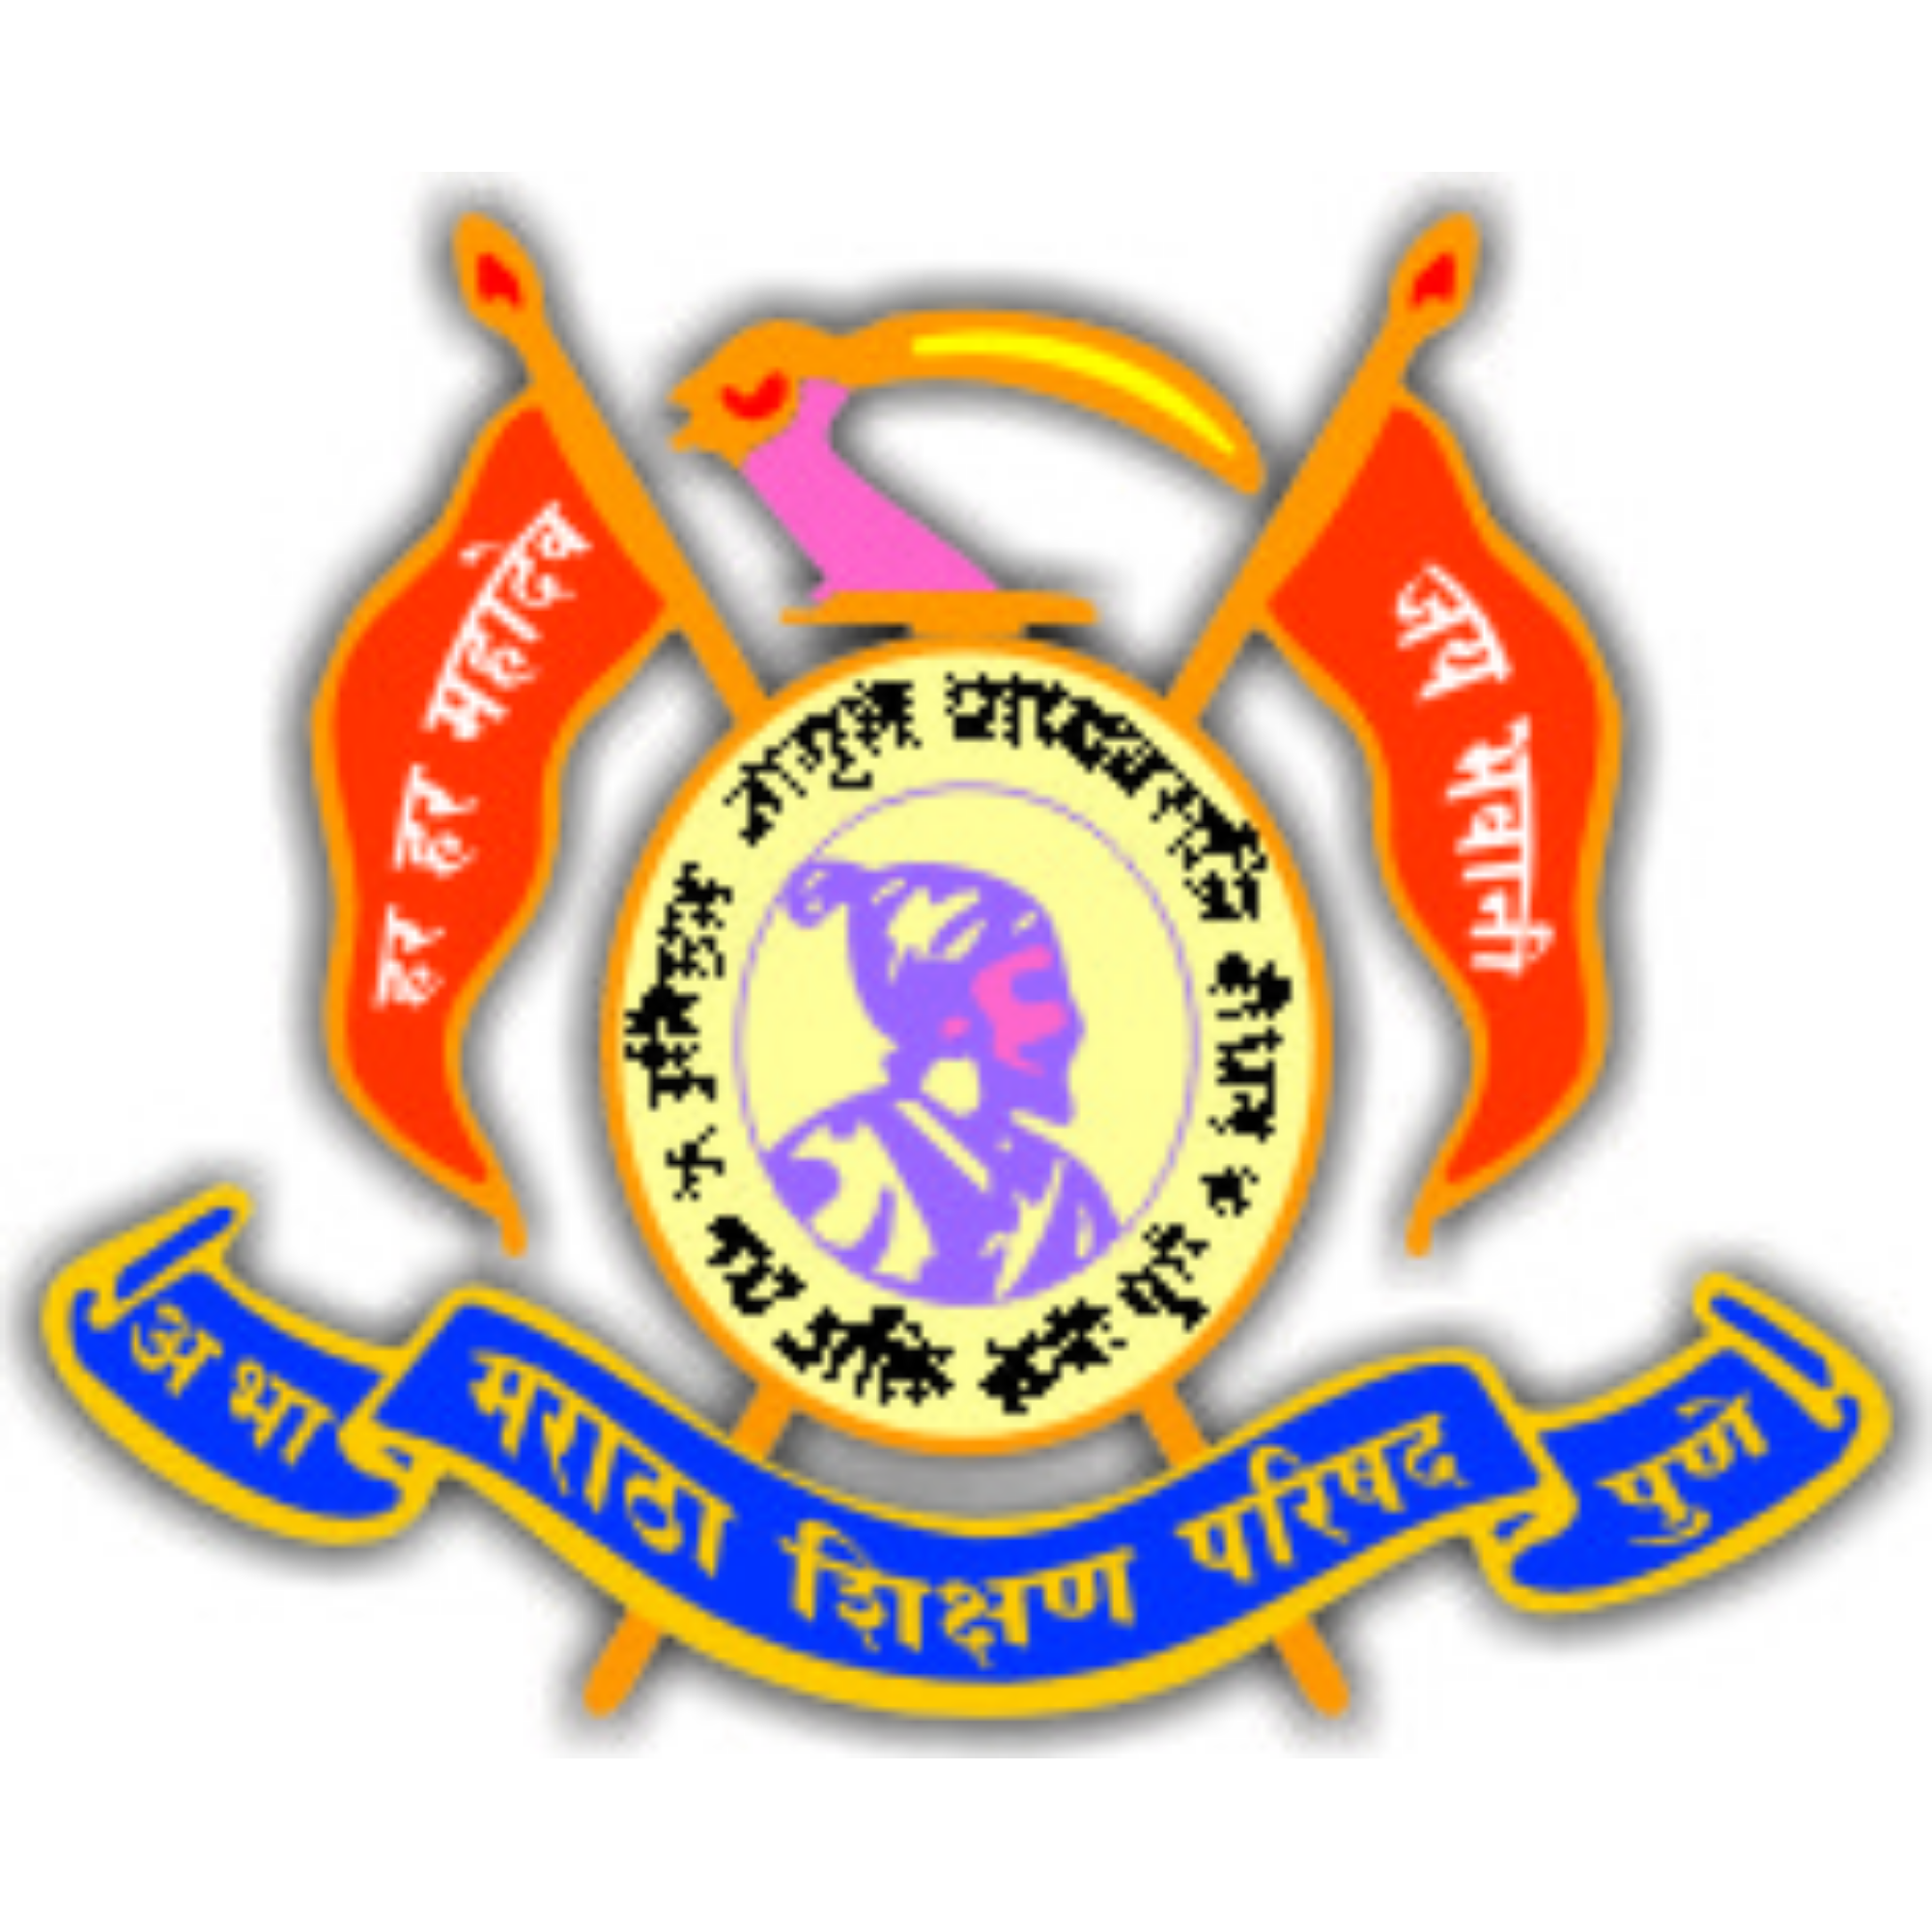 Anantrao Pawar College of Engineering and Research[SPPU]